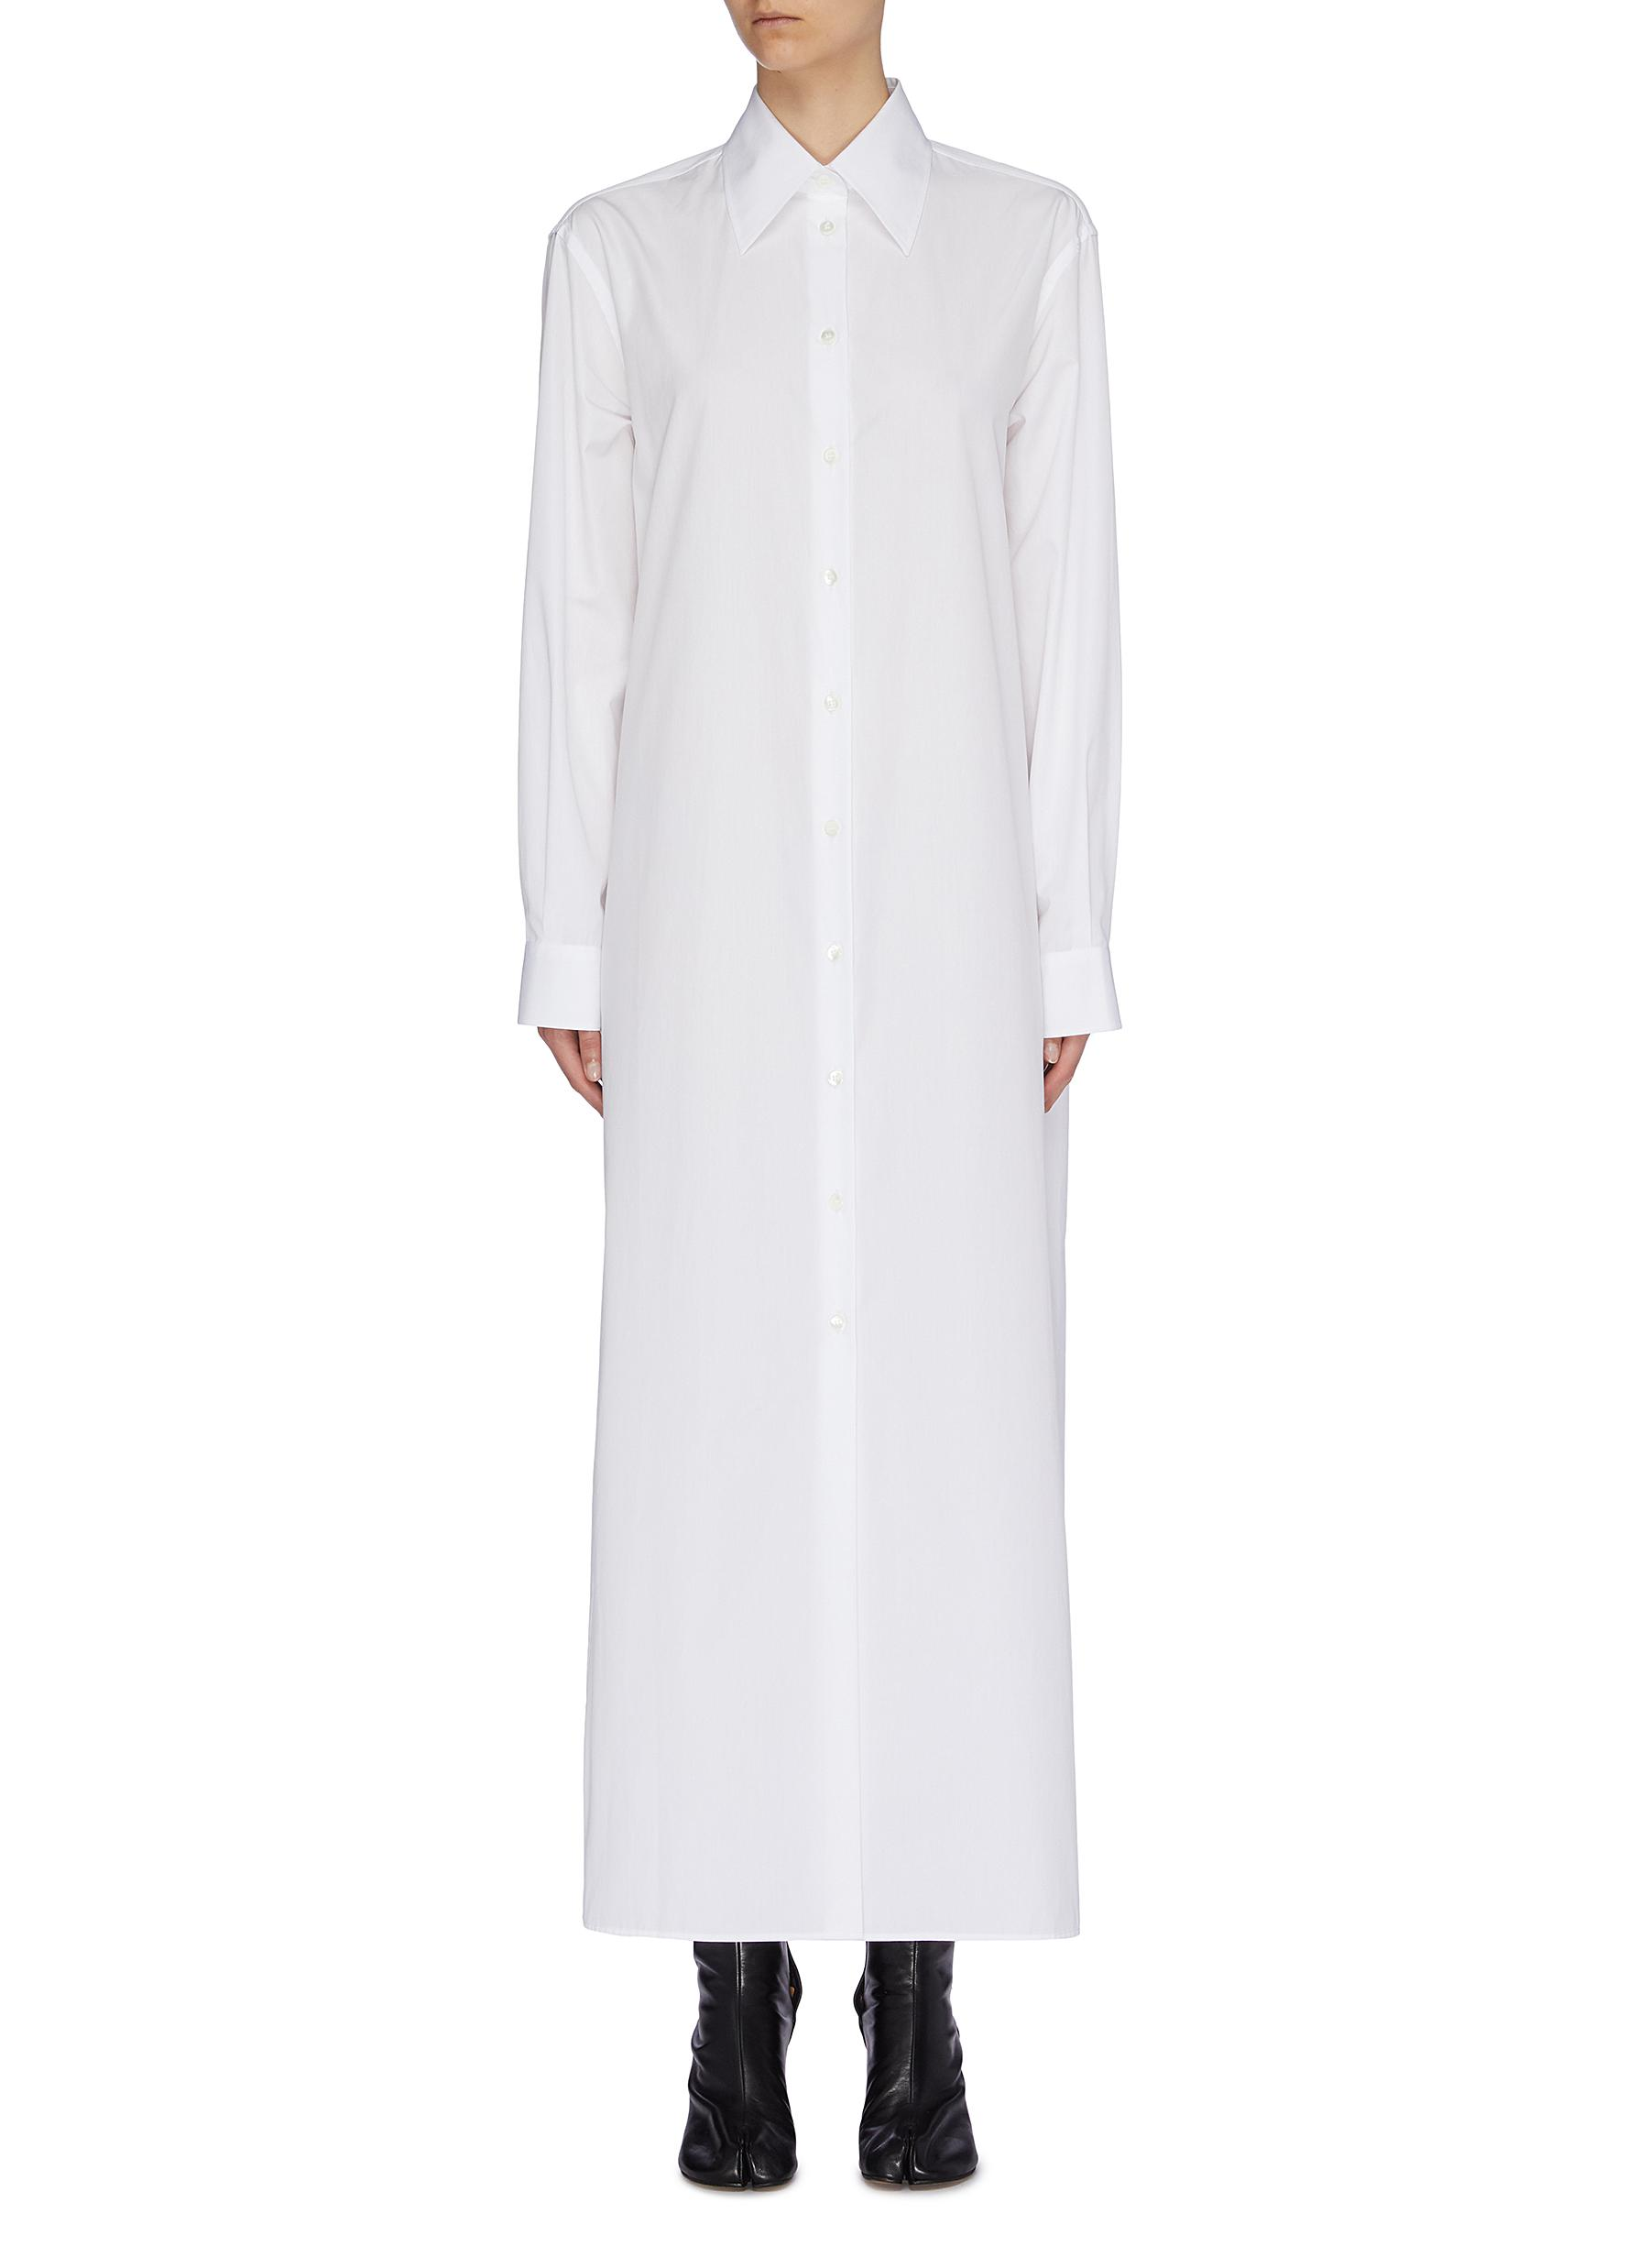 Oversized shirt dress by Maison Margiela